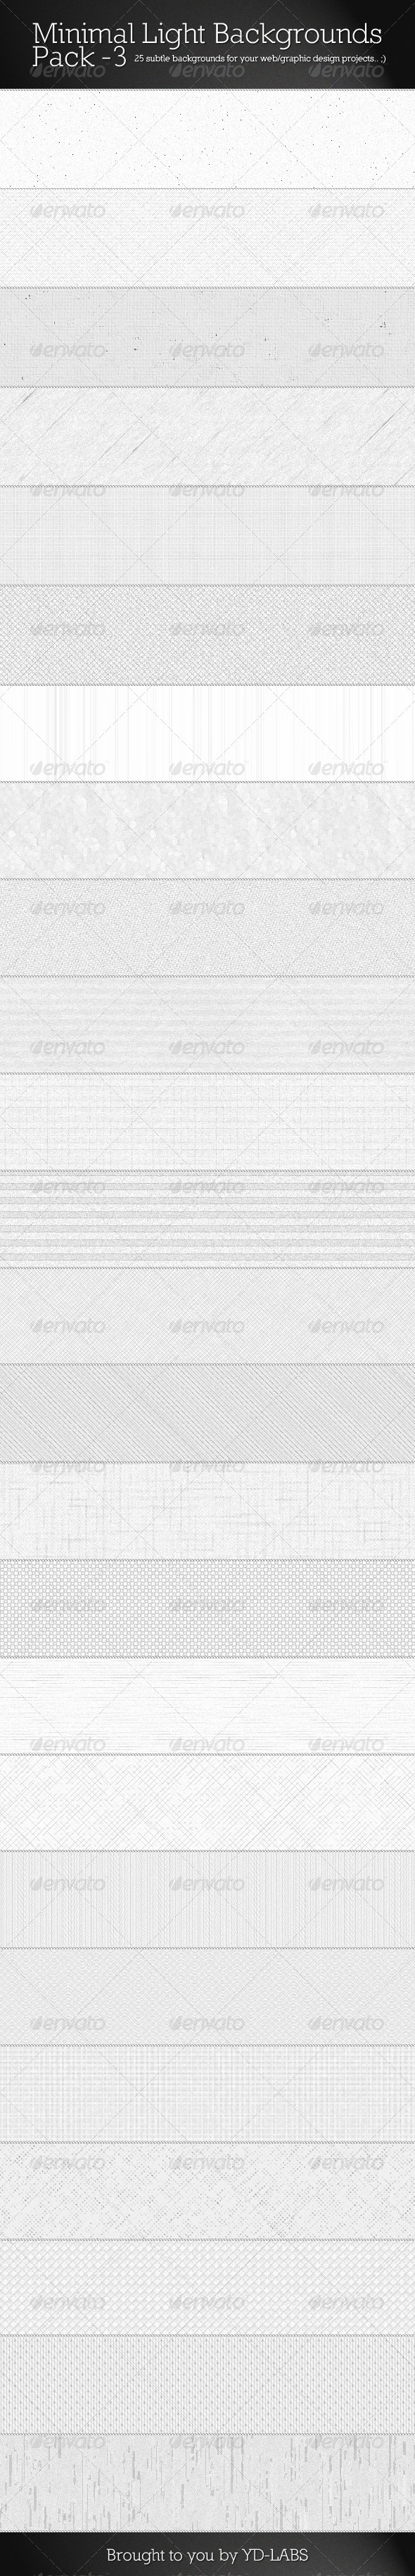 GraphicRiver Minimal Light Backgrounds Pack 3 3509958